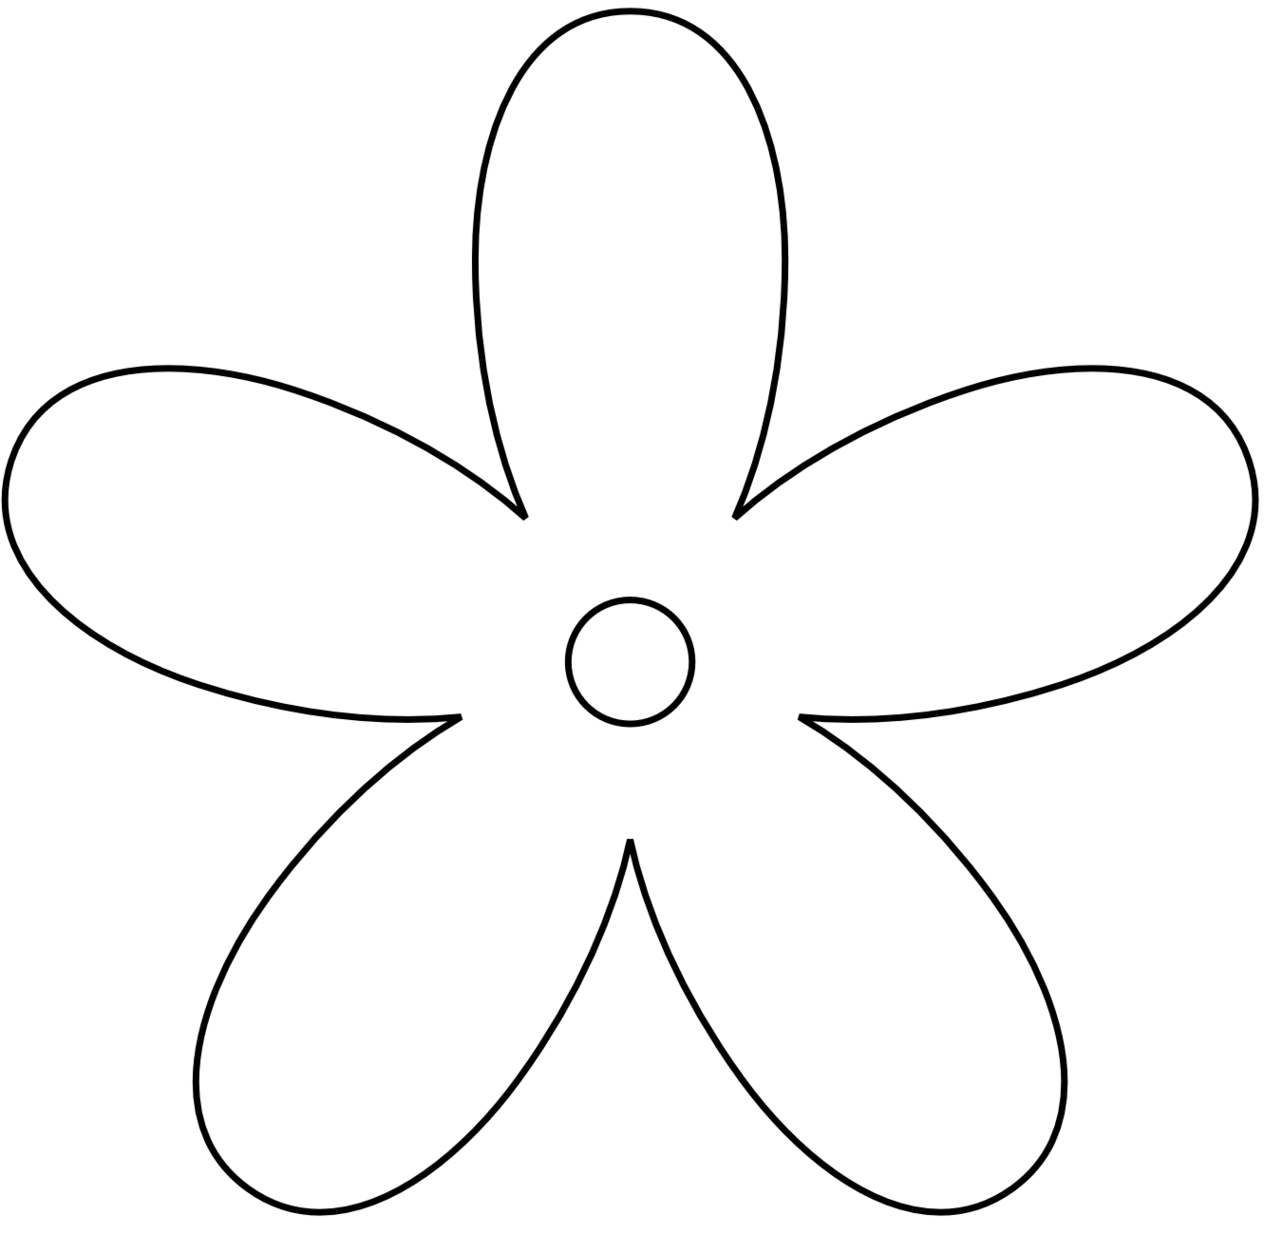 Flower black and white flowers clip art black and white.